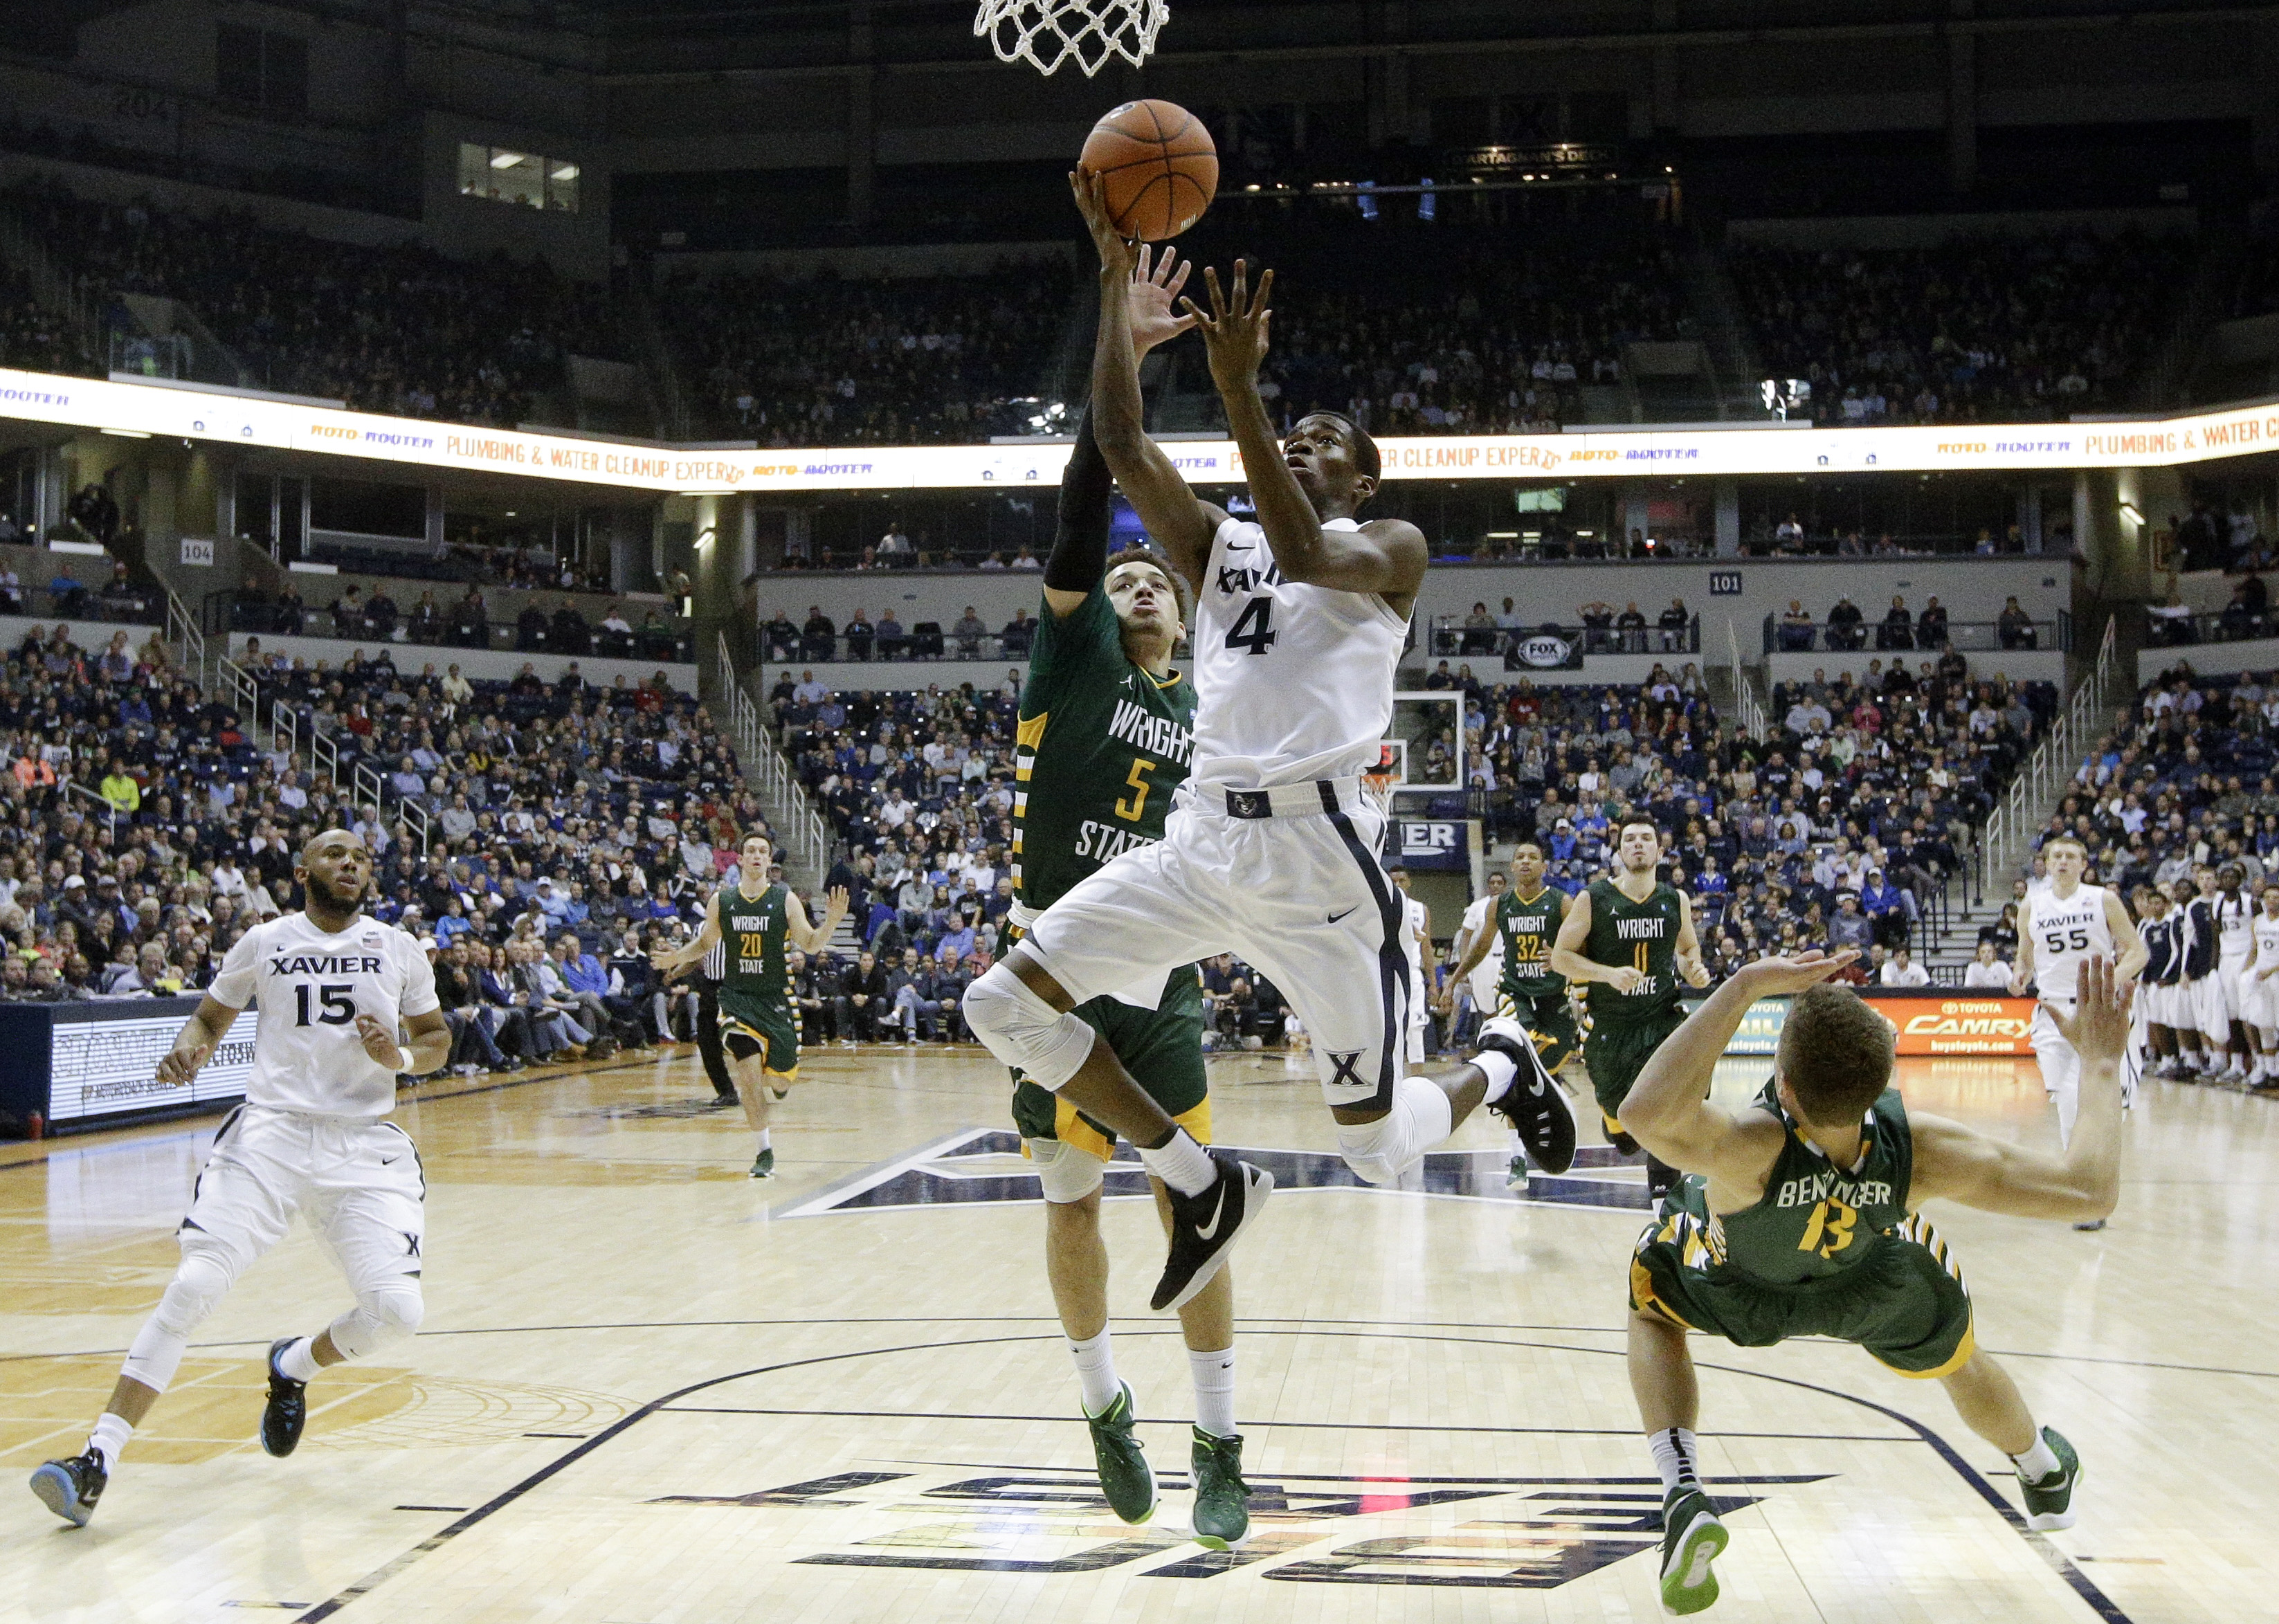 Xavier's Edmond Sumner (4) shoots over Wright State's Justin Mitchell (5) in the first half of an NCAA college basketball game, Tuesday, Dec. 8, 2015, in Cincinnati. (AP Photo/John Minchillo)